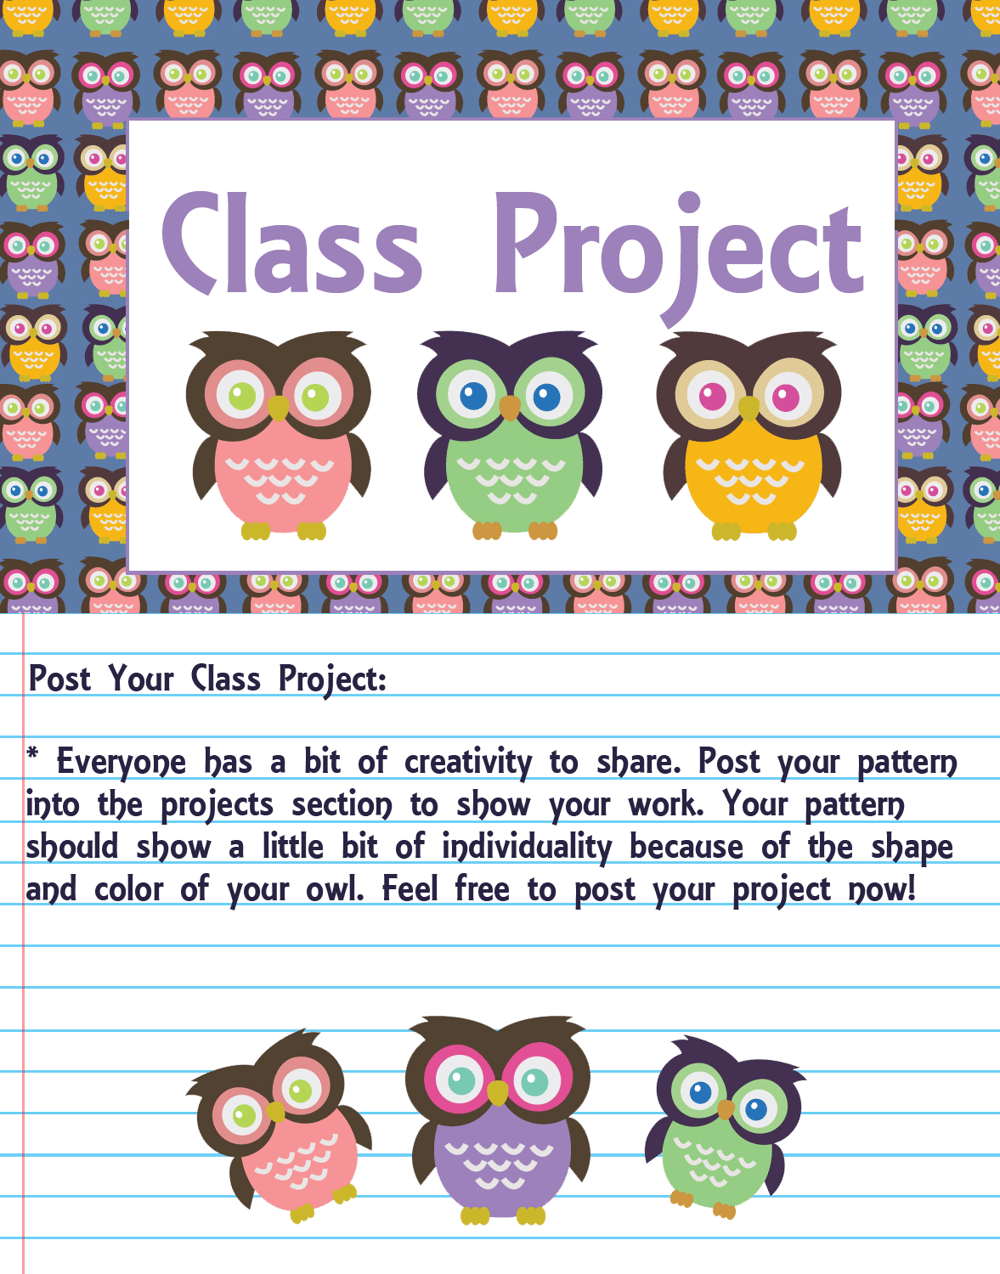 Adobe Illustrator: How to Make Seamless Owl Pattern - image 3 - student project